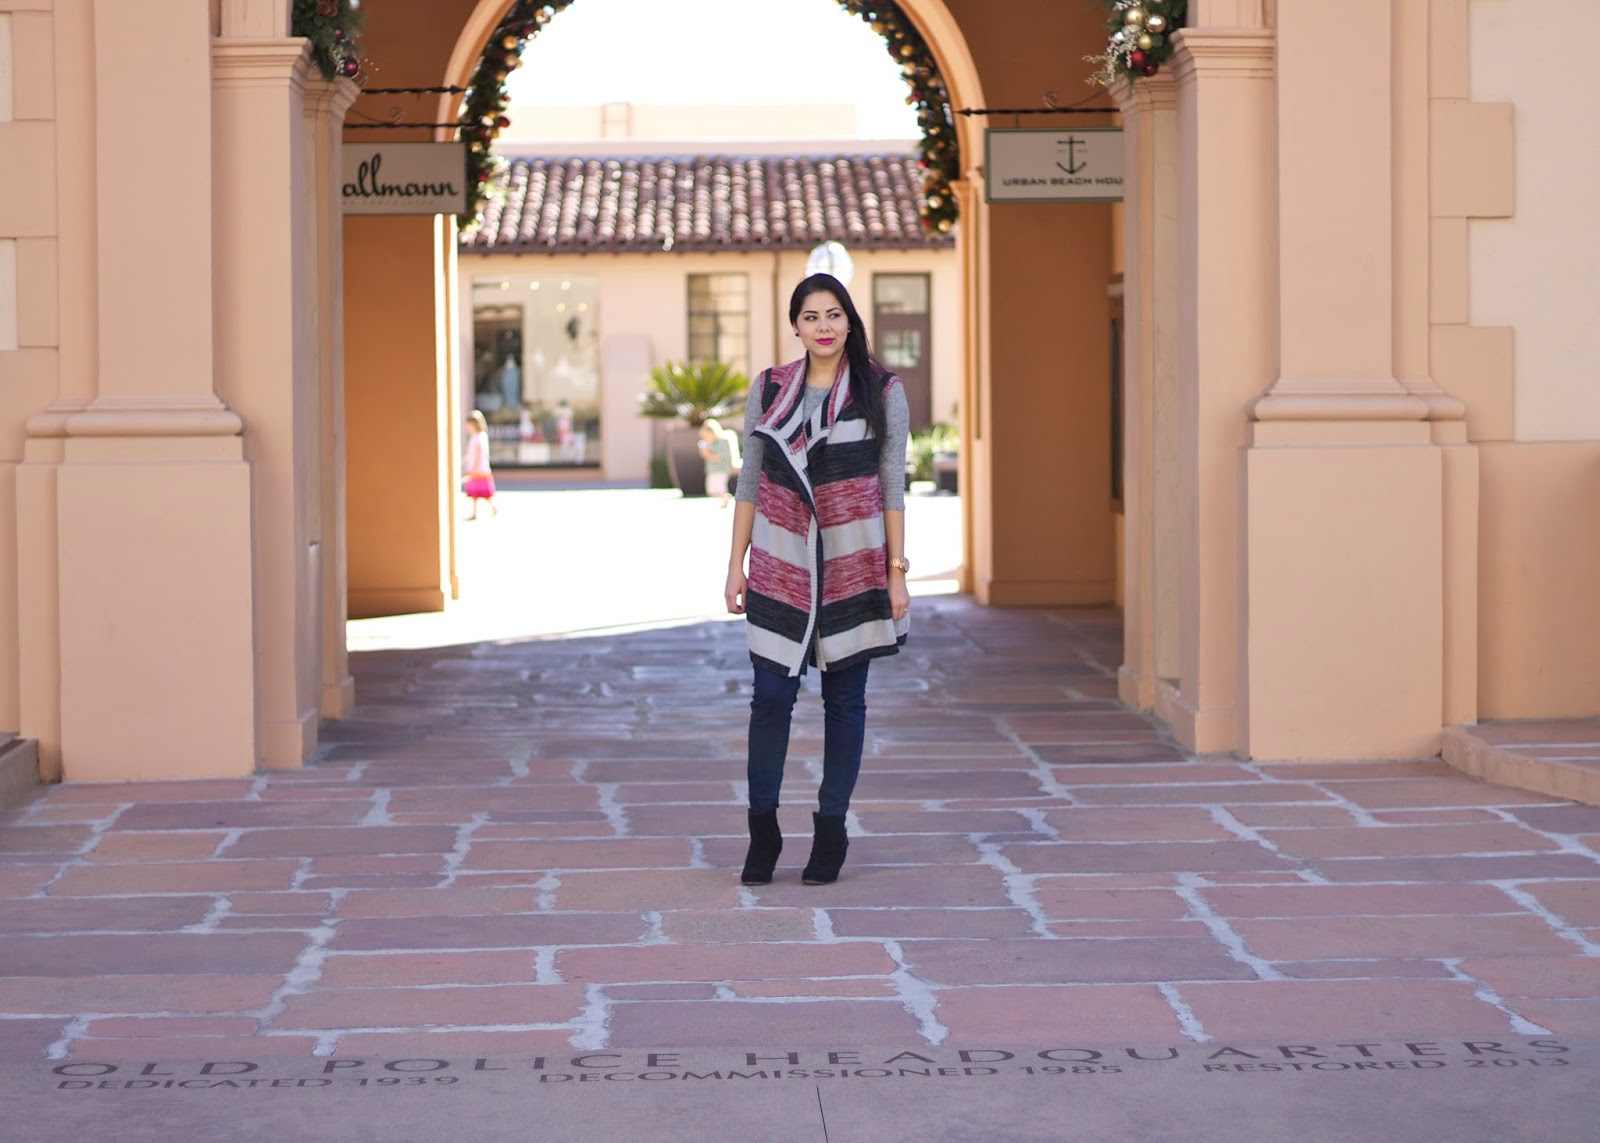 The headquarters san diego, the headquarters at Seaport blogger, fashion blogger at the Headquarters, San Diego fashion, San Diego tourist spot